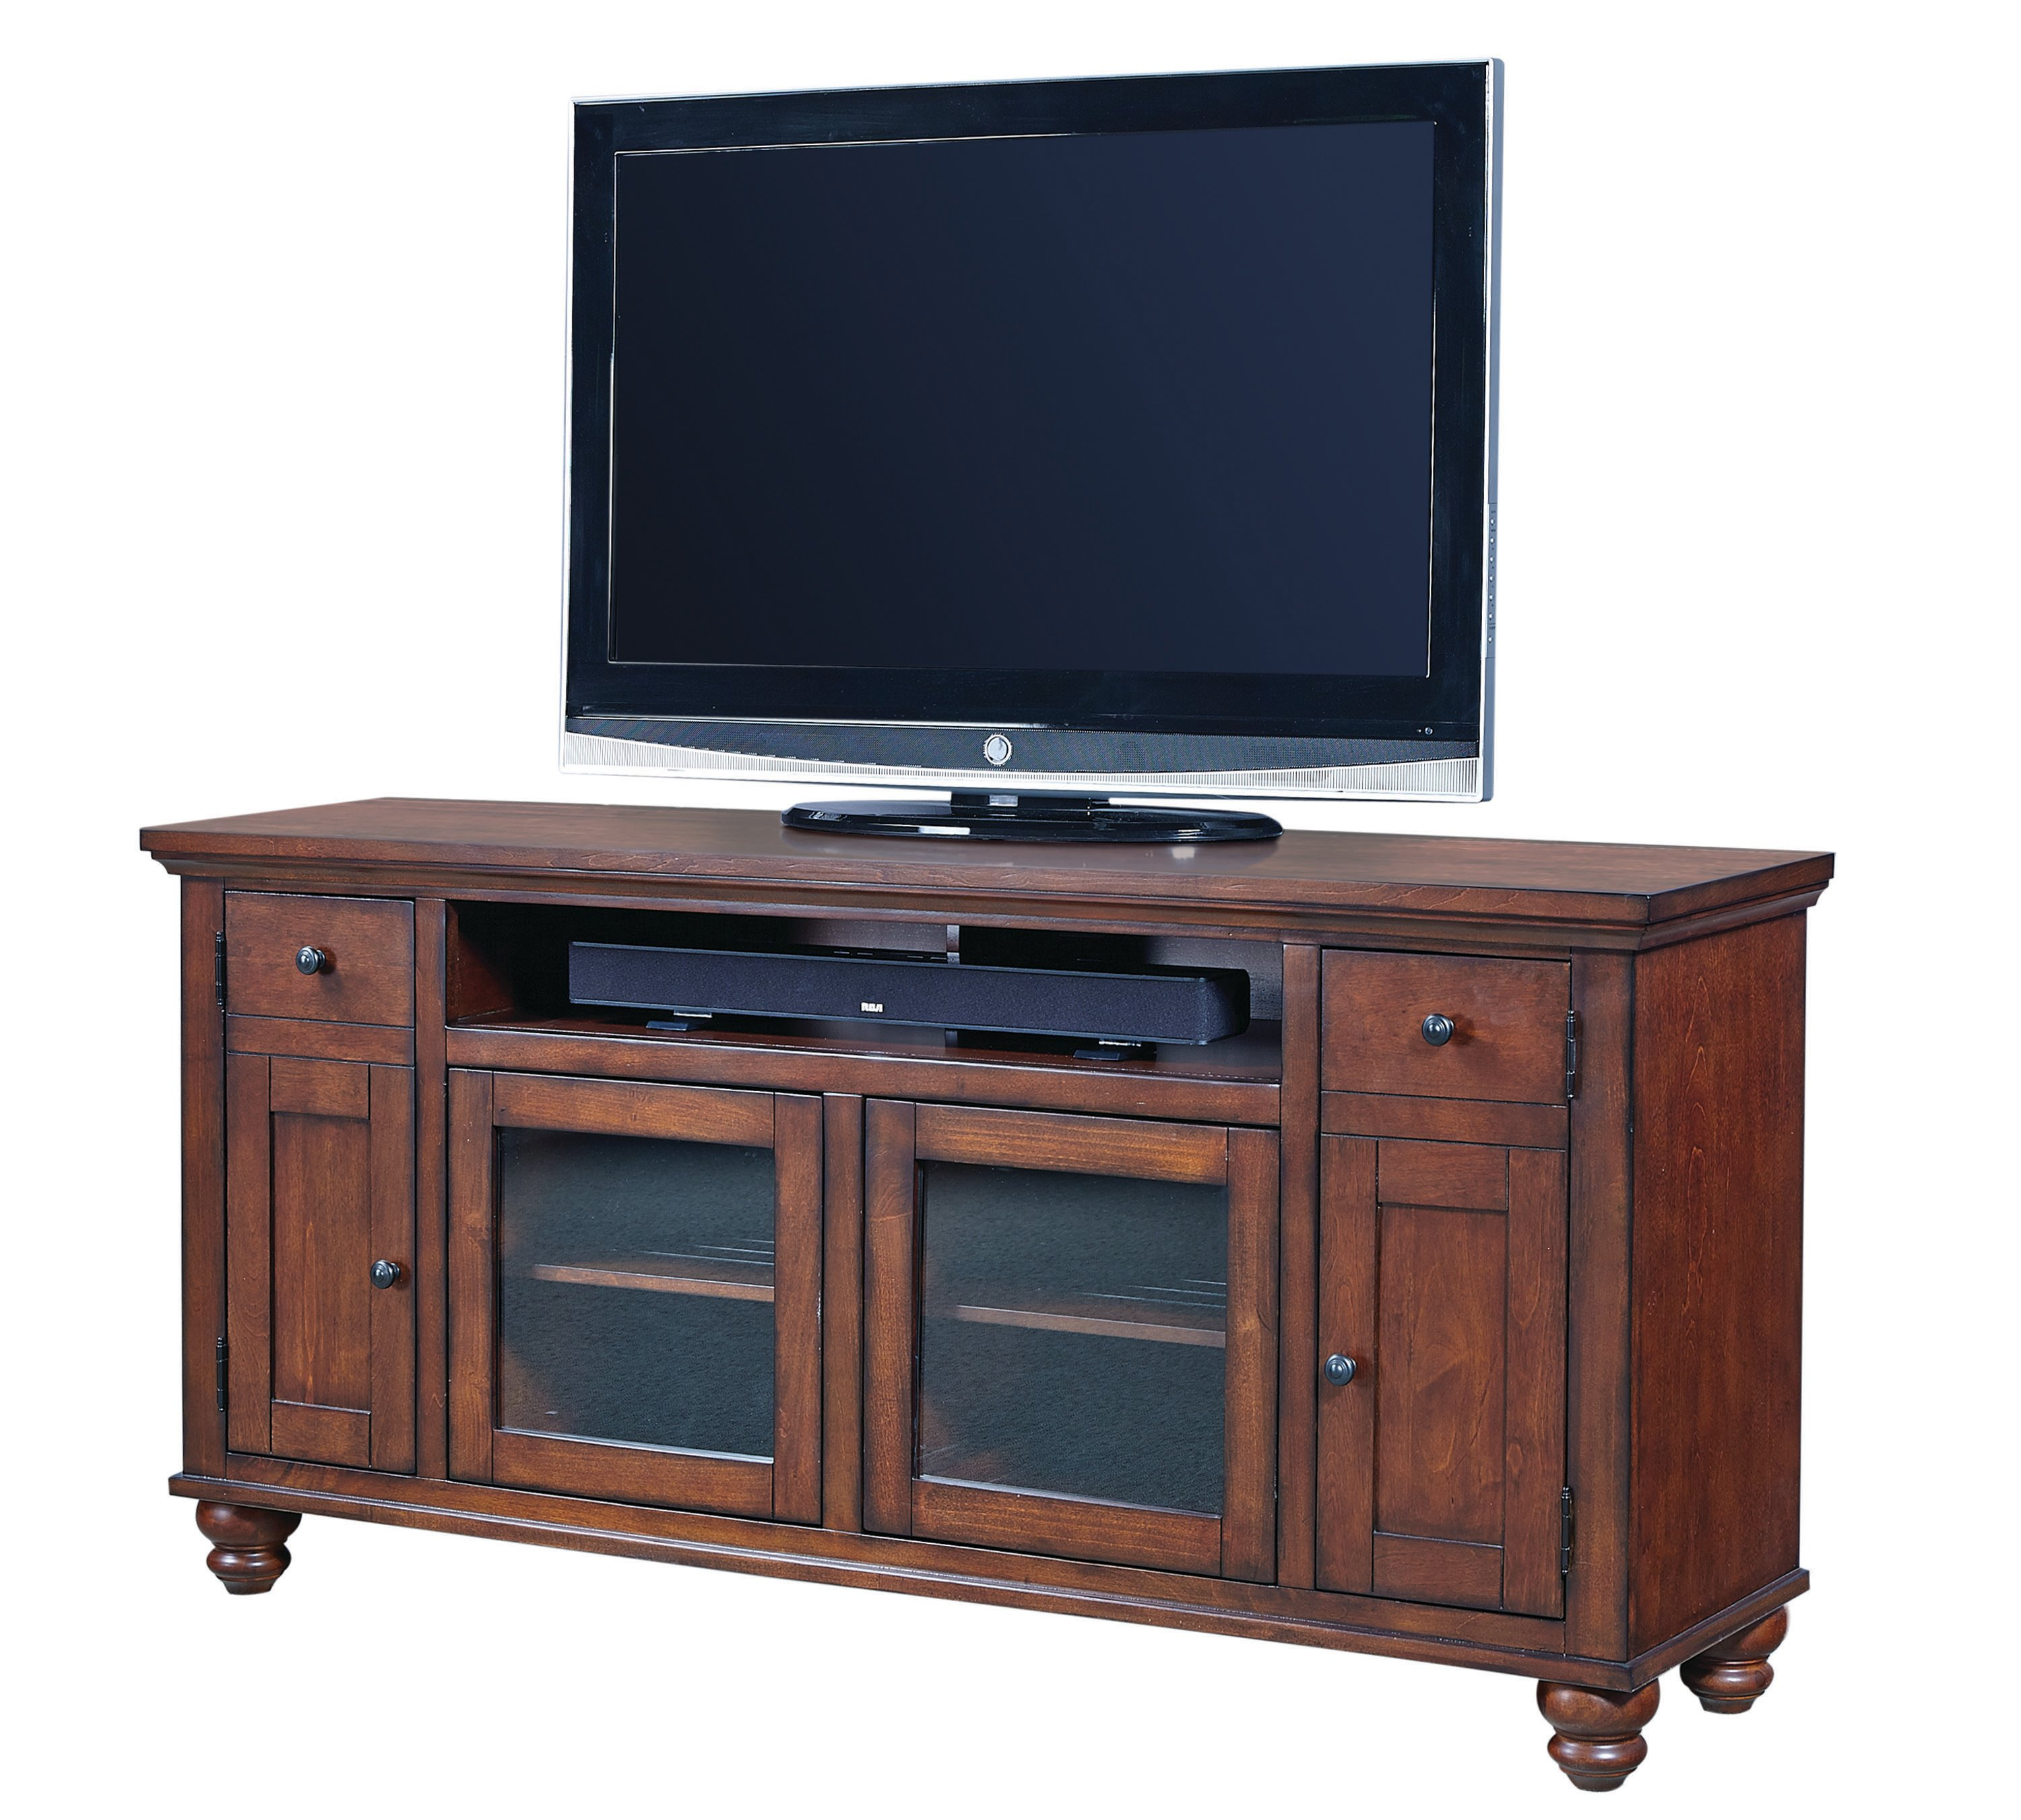 4 piece cherry brown entertainment center cambridge rc willey furniture store. Black Bedroom Furniture Sets. Home Design Ideas